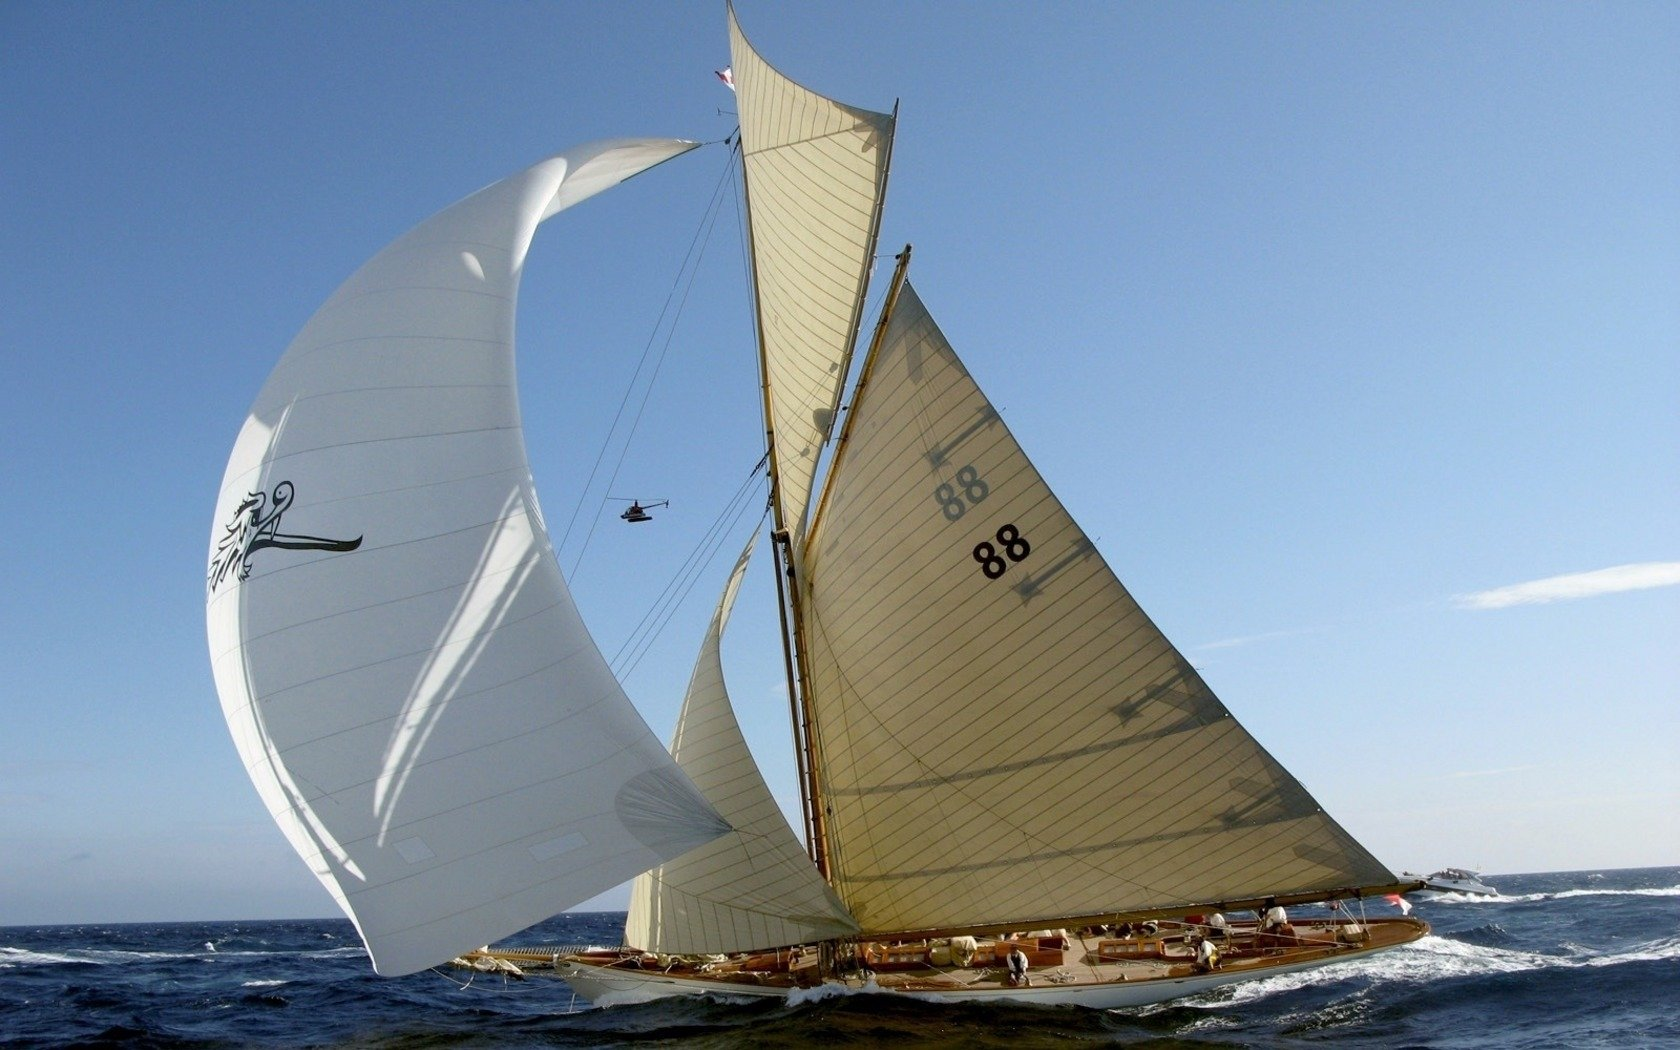 Race Sailing wallpapers and images - wallpapers, pictures, photos